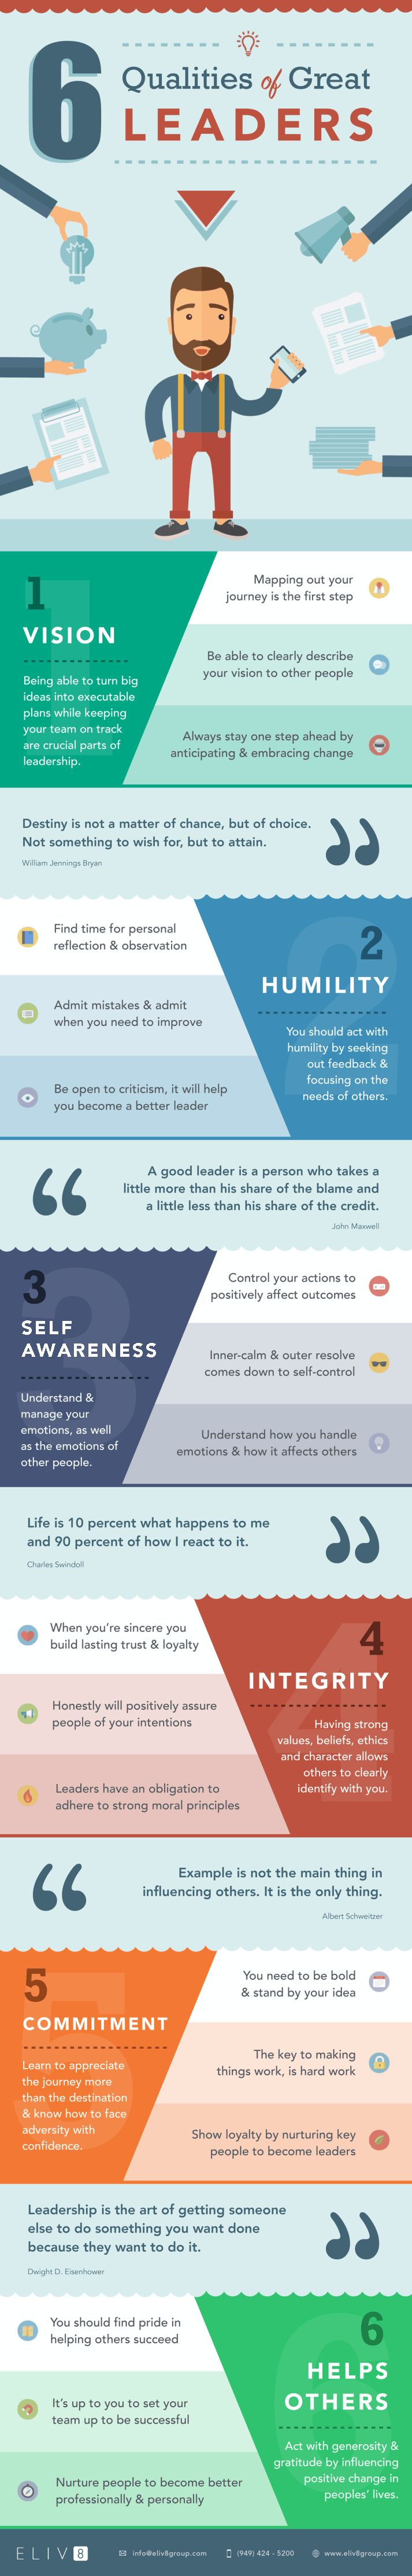 Great leaders have lots of traits that are worth emulating. Here is a illustrated breakdown of 6 of the best qualities all great leaders have.